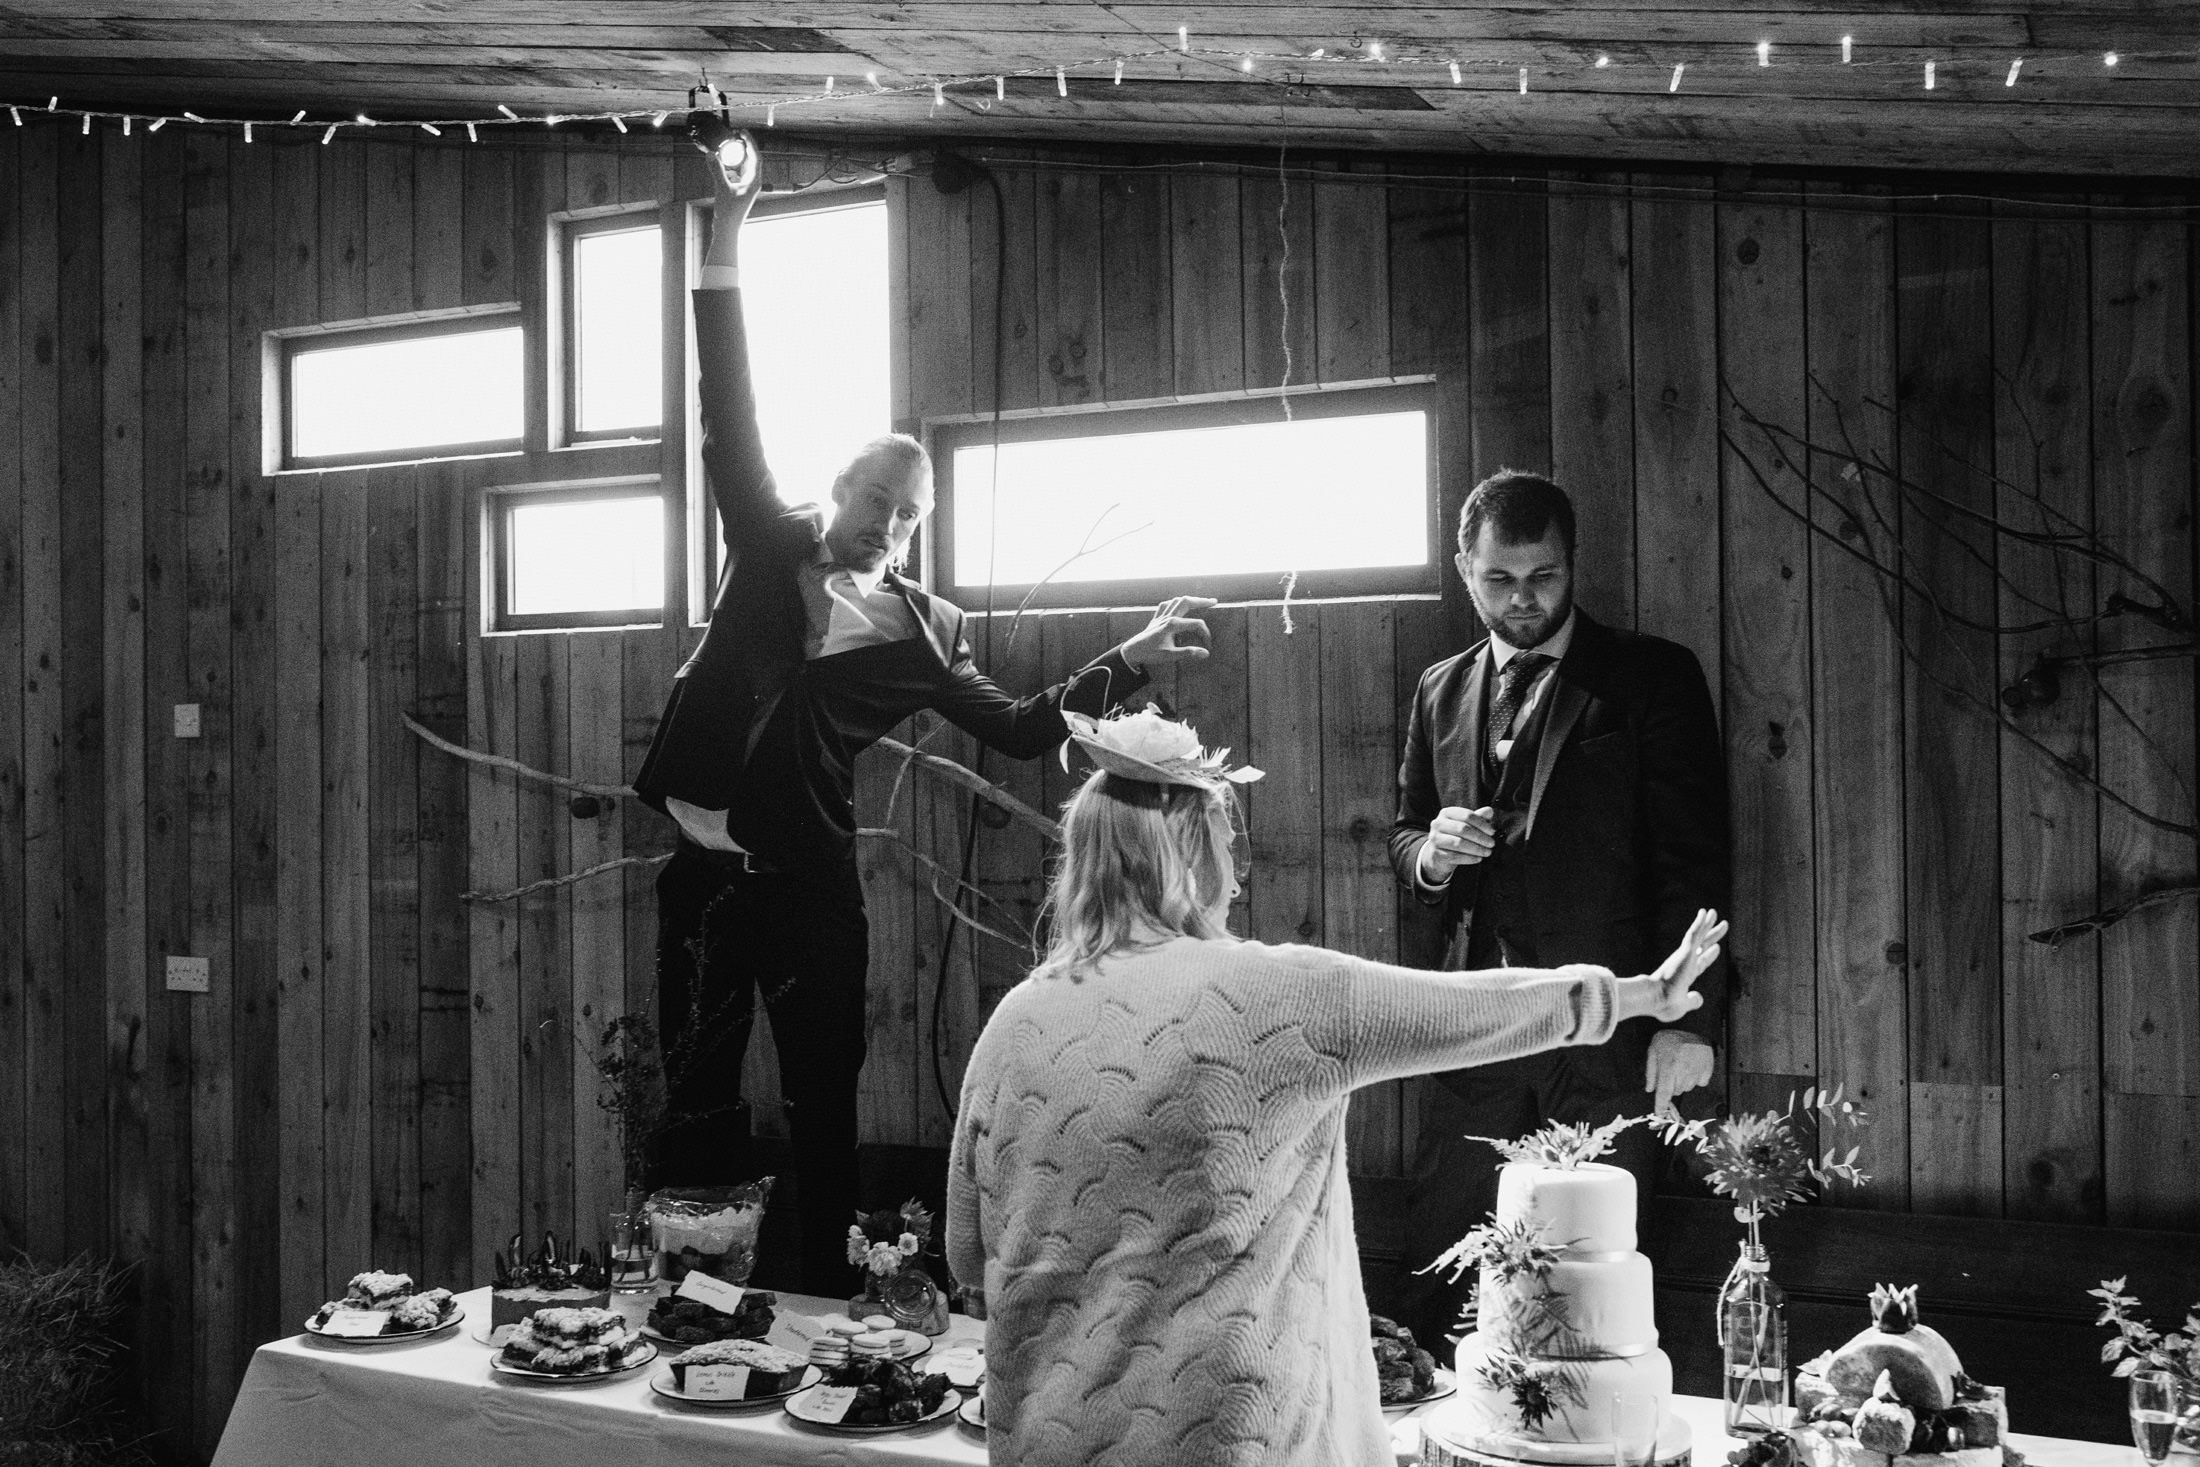 wedding guests helping with the wedding preparations